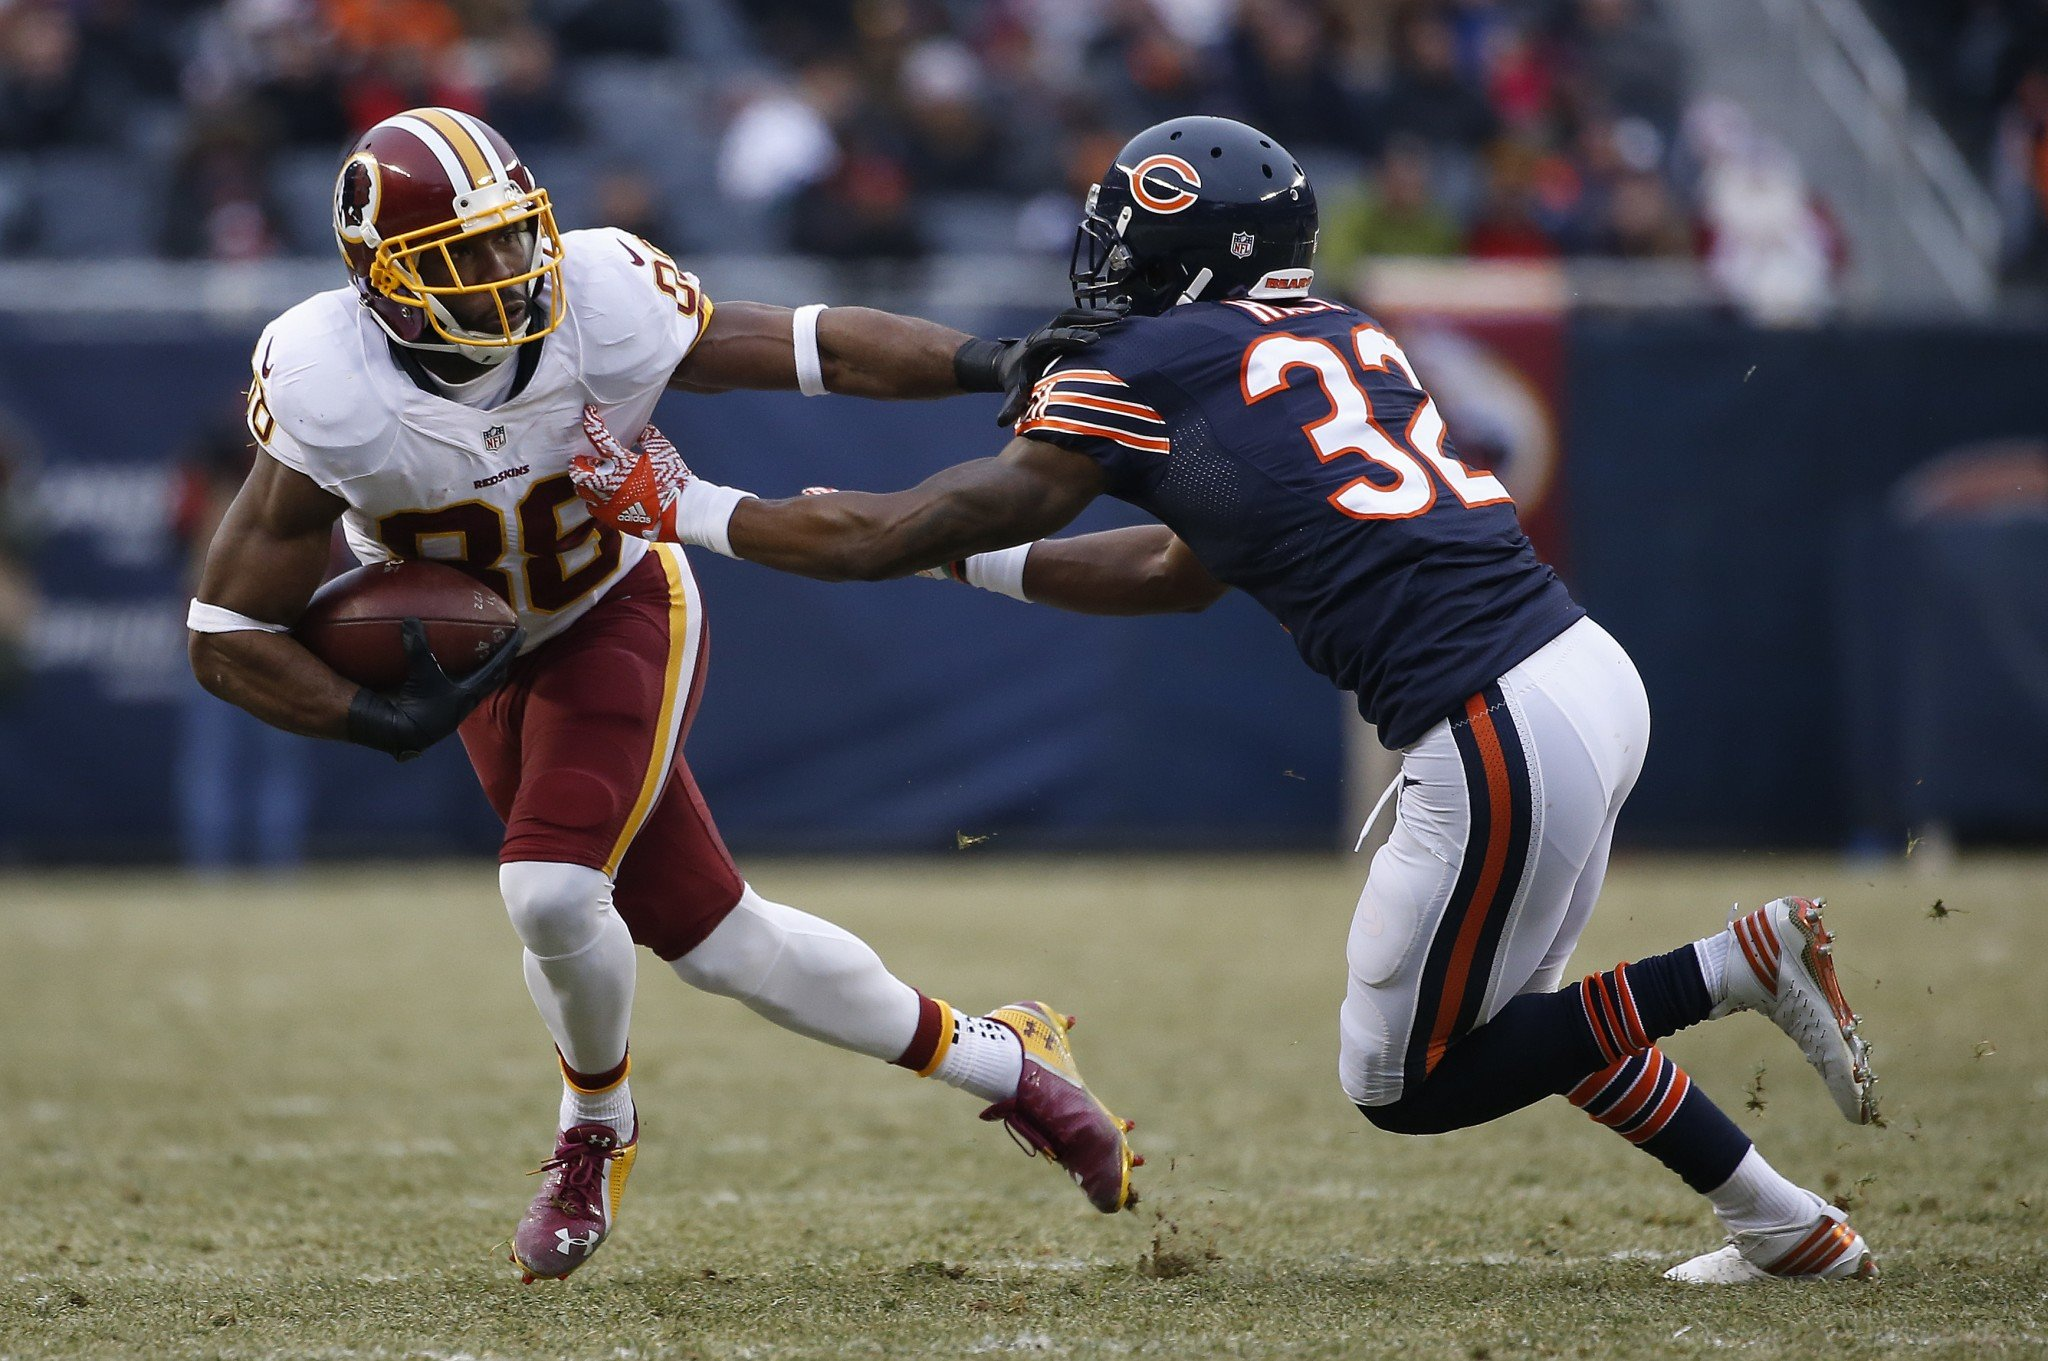 Pierre Garcon posts cryptic social media message